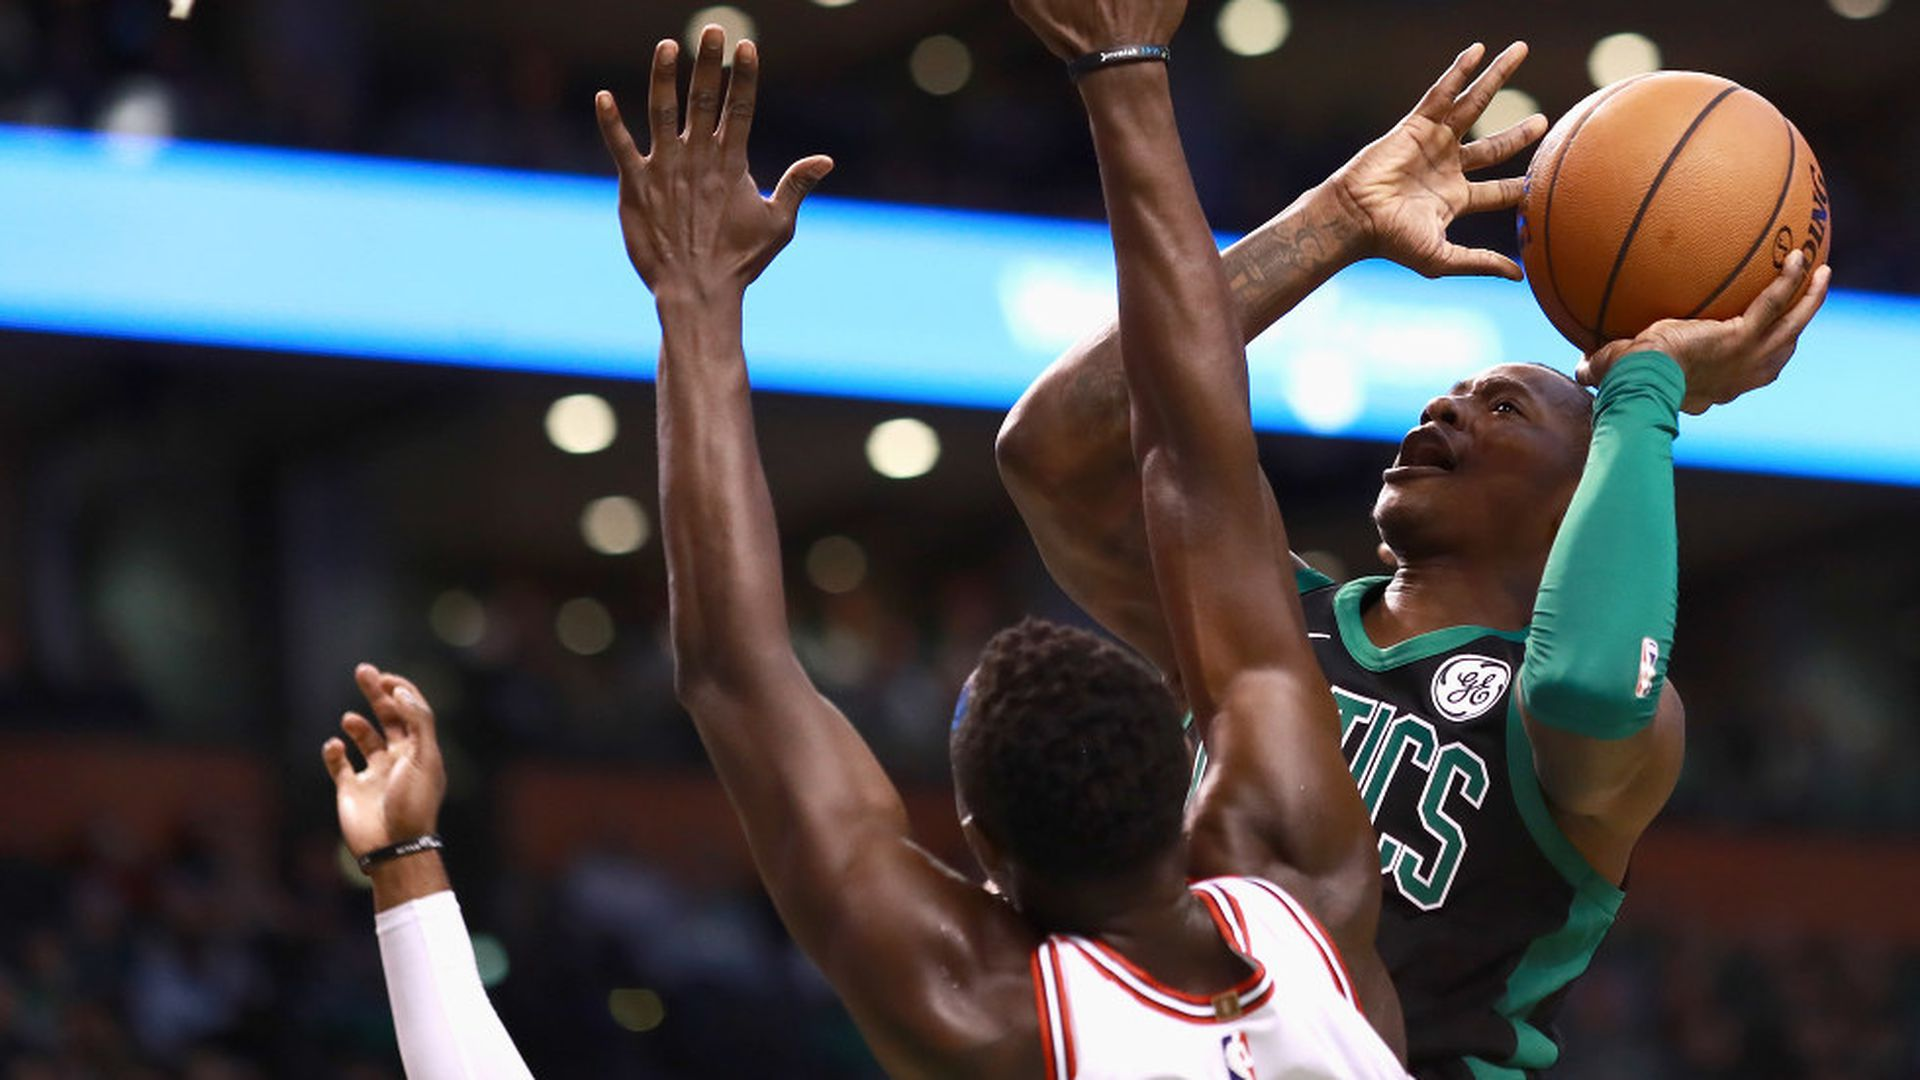 nba fights nfl ratings with christmas day games - Nfl Schedule Christmas Day